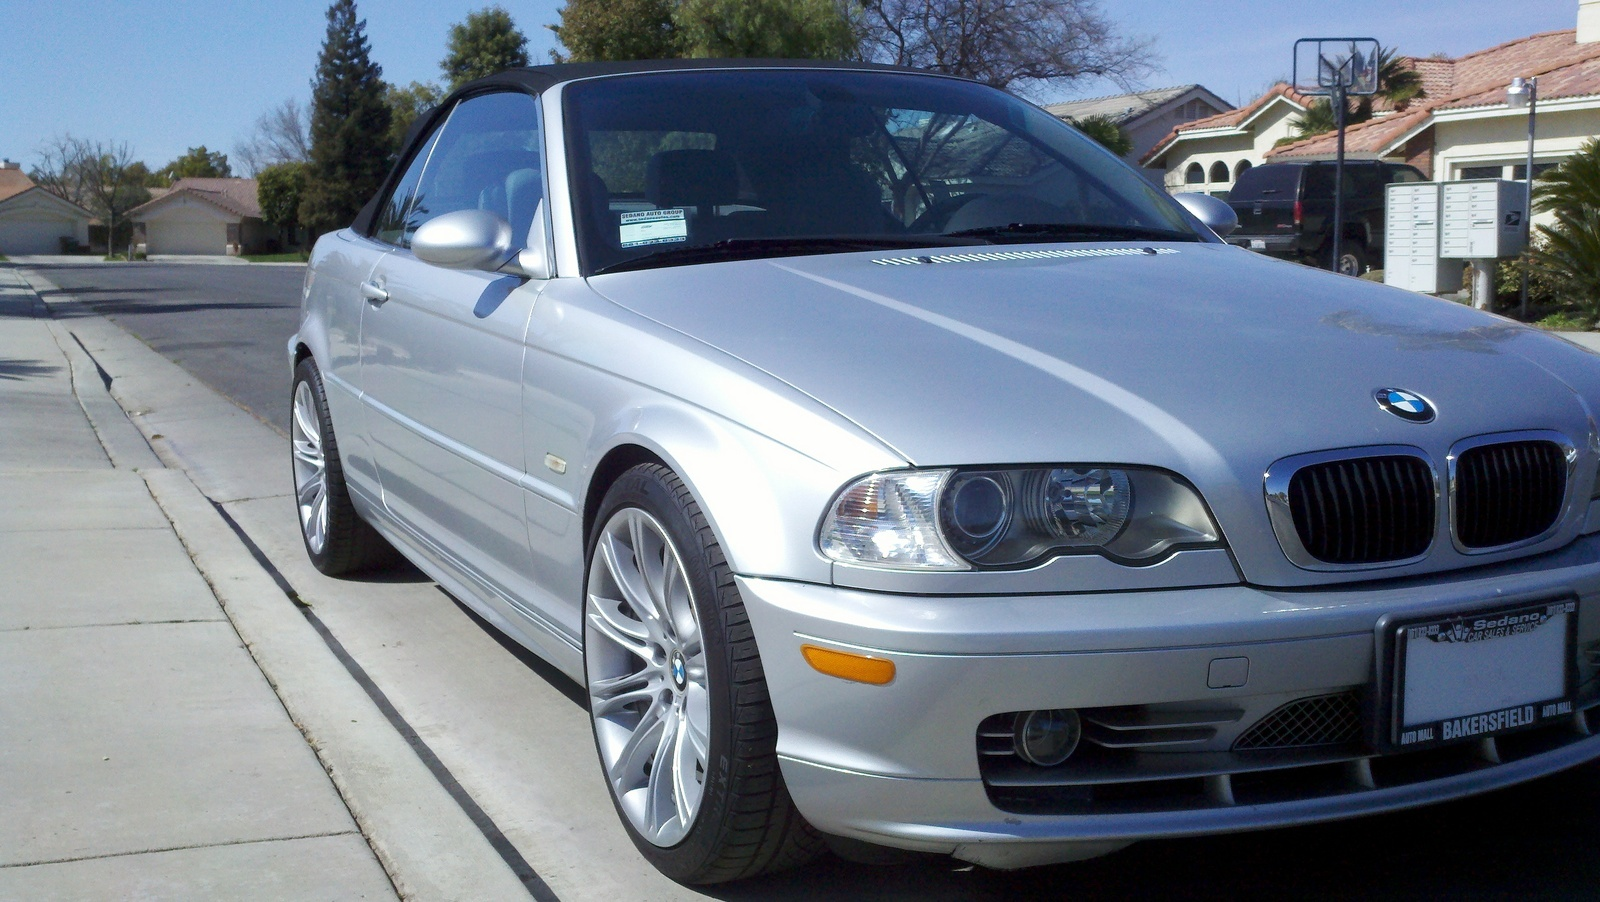 Bmw 3 Series Questions I Just Bought 330 It Has 89000 Miles And Timing Belt Inside Have No Maintenance Records What Should Be Watching For This Is My First Love Car